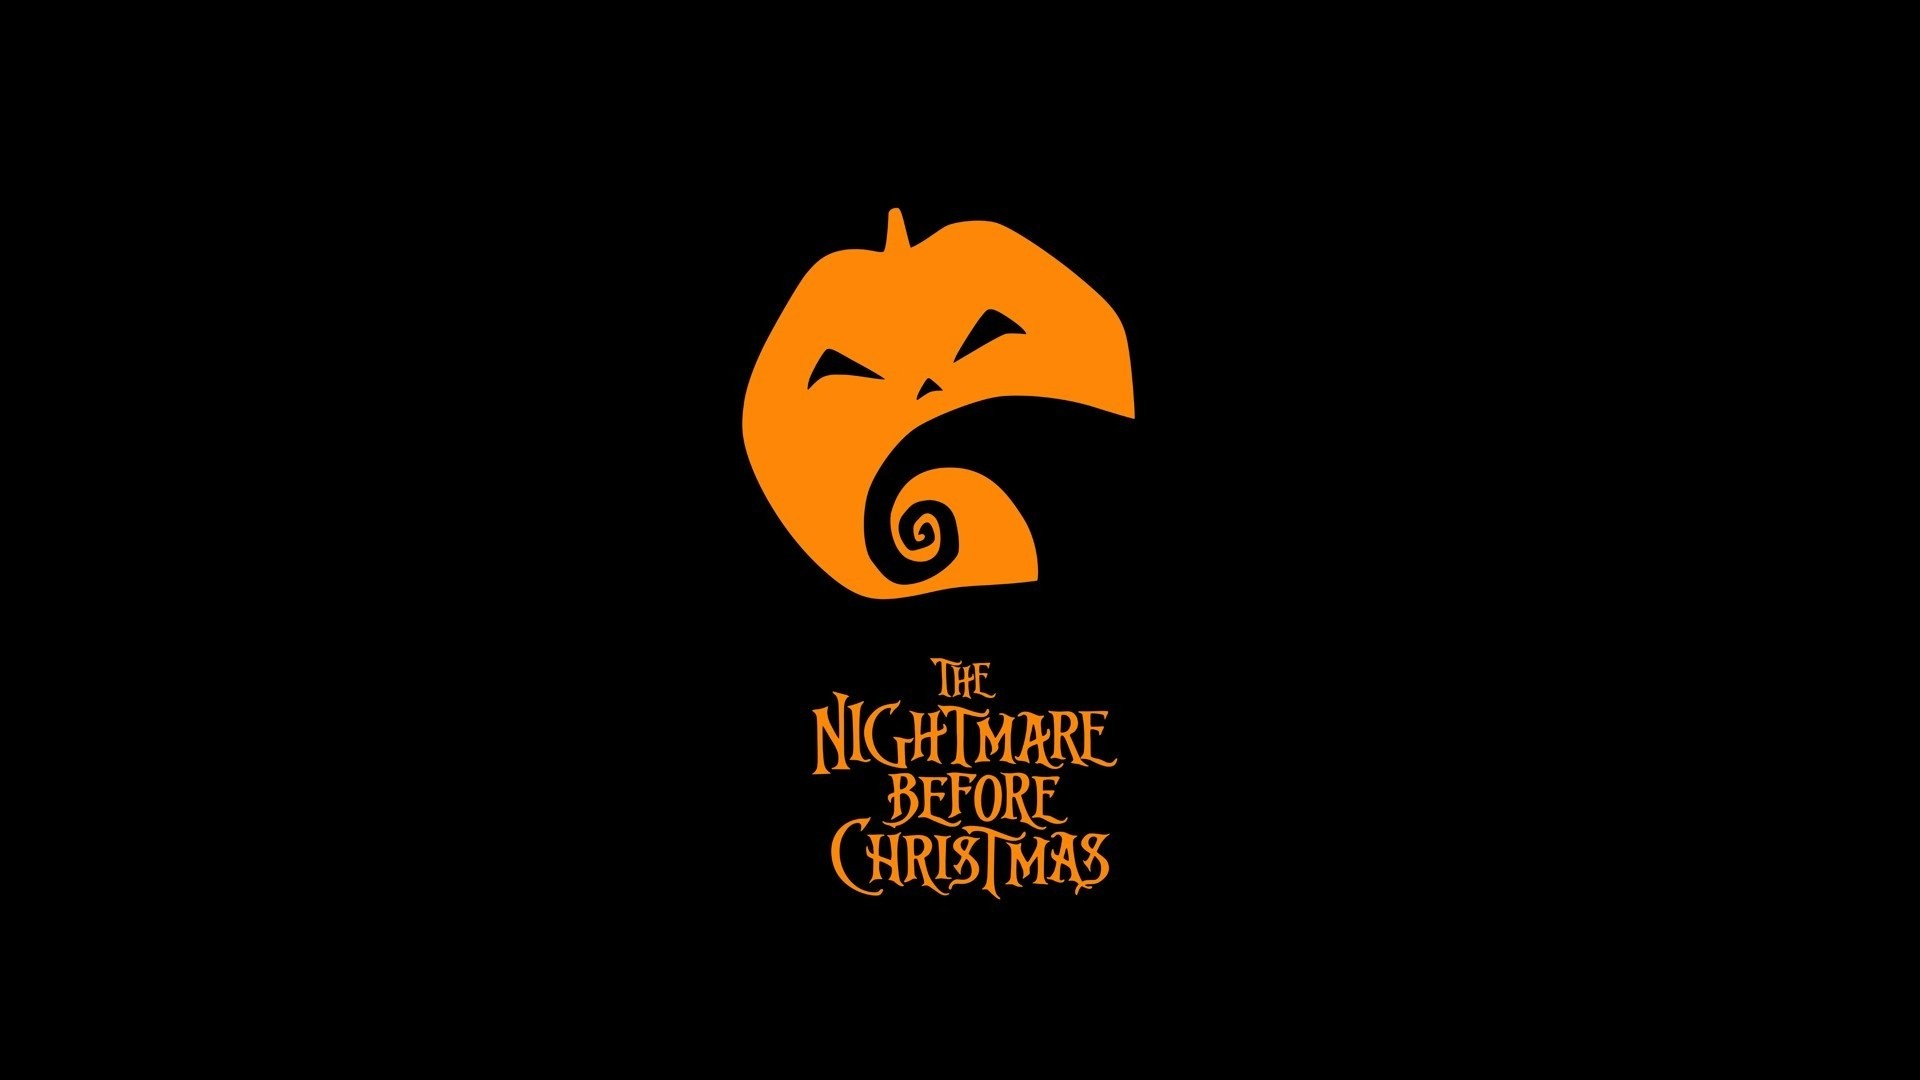 Nightmare Before Christmas a wallpaper